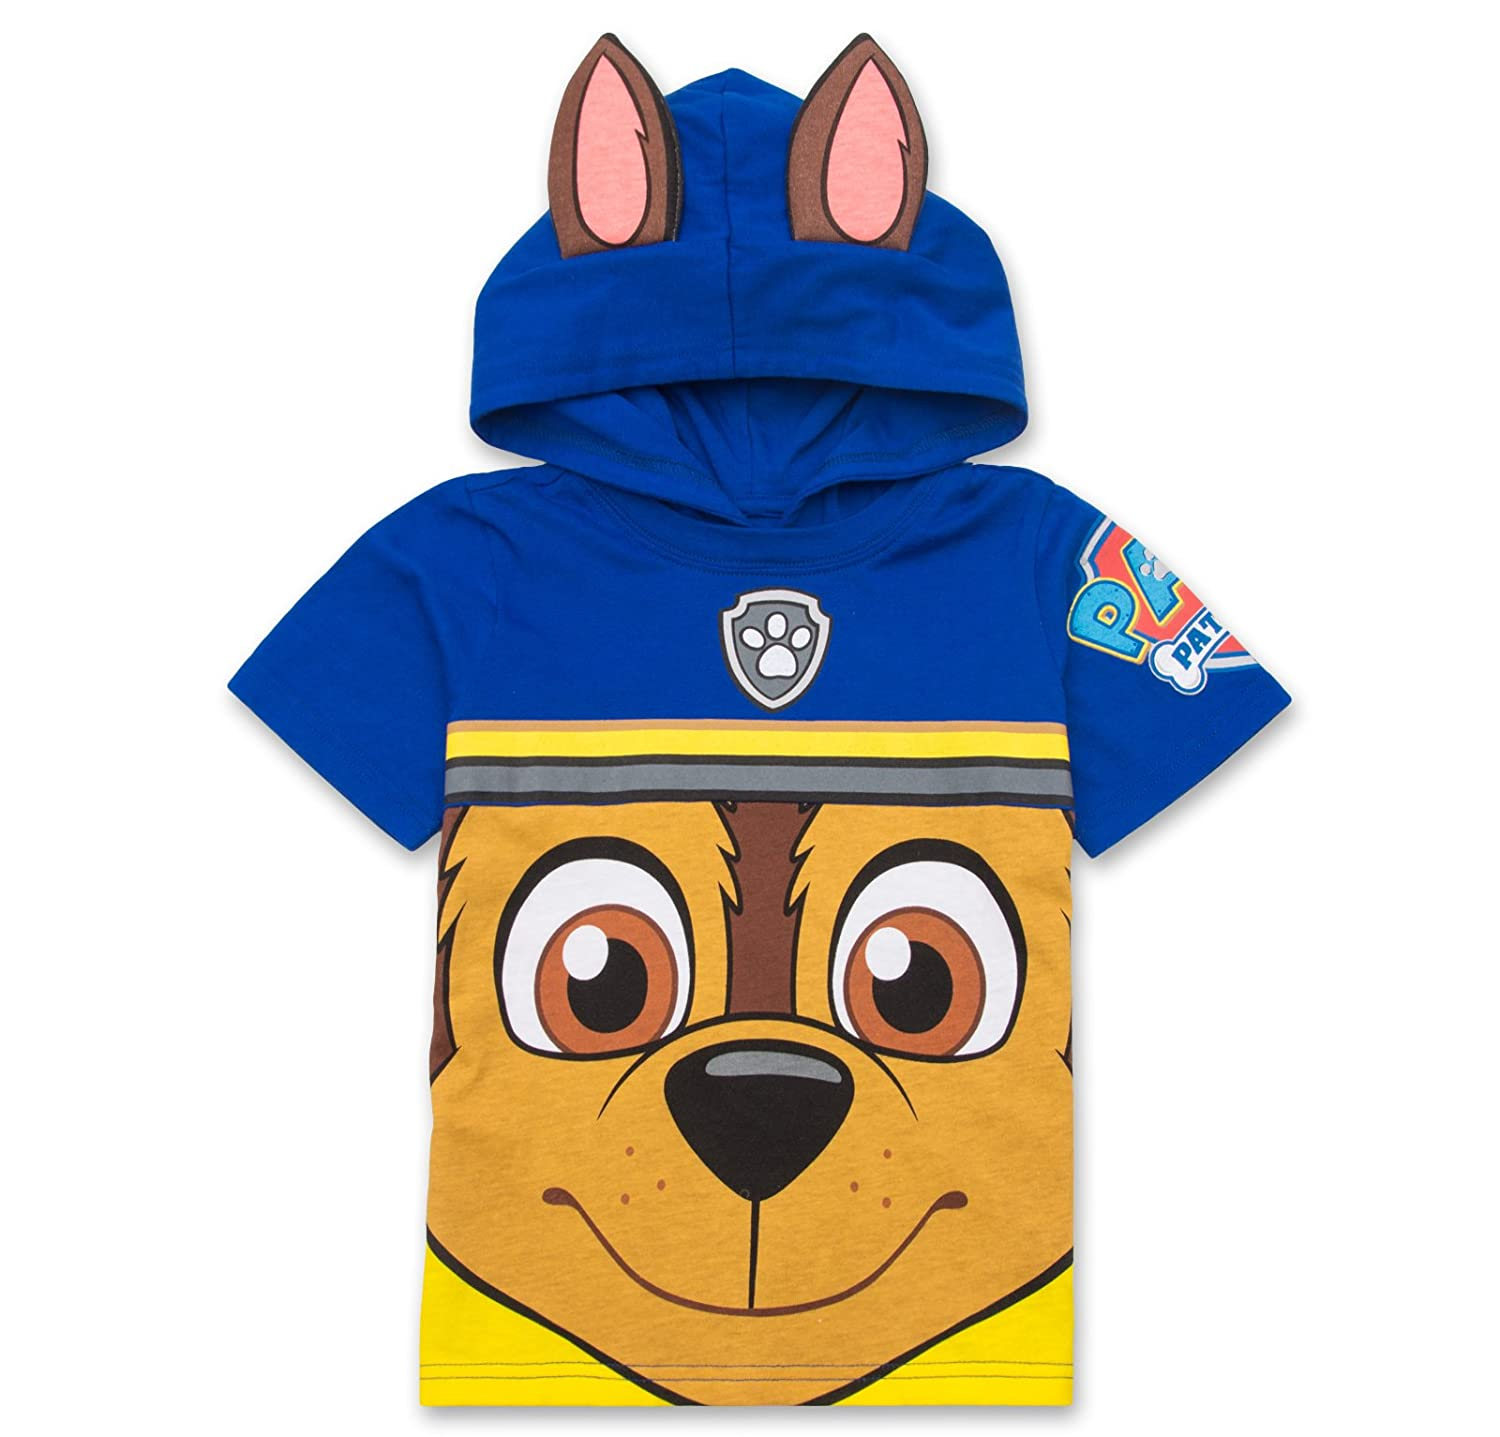 8b746be648 FAVORITE CHARACTERS: Collect hooded shirts of PAW Patrol stars Chase,  Marshall, Rocky, Rubble & Zuma ✓ BIG FACES: Each Nickelodeon rescue dog  t-shirt leaps ...